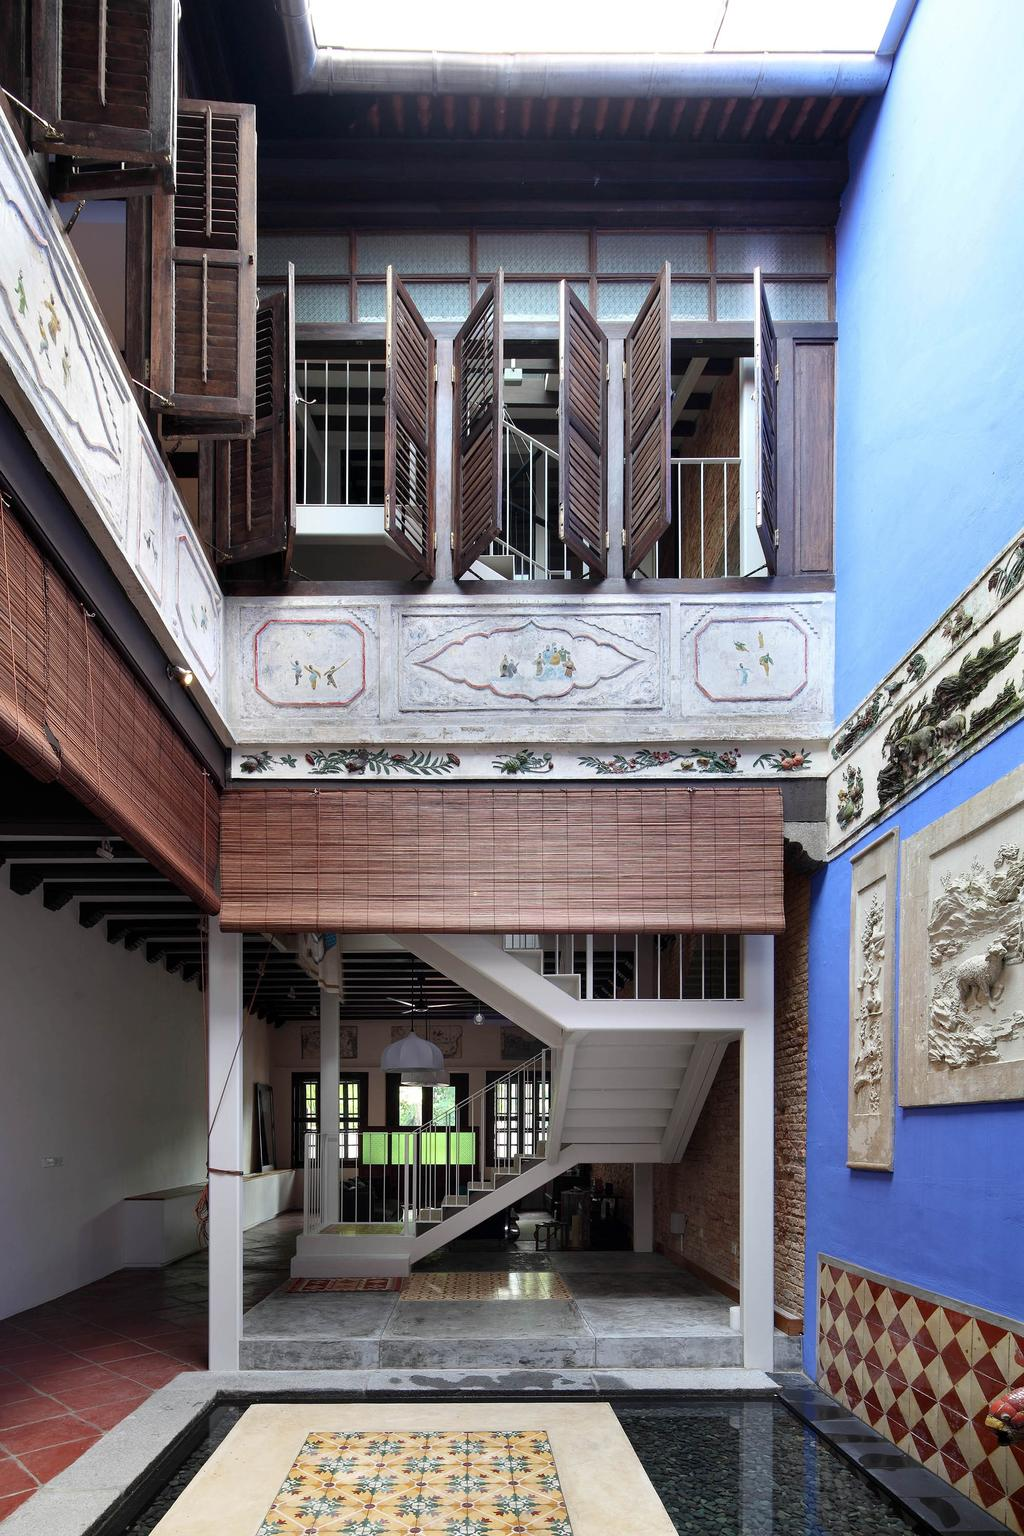 Traditional, Landed, Living Room, Neil Road Shophouse, Interior Designer, The Design Abode, Blinds, Oriental, Antique, Blue, Tiles, Wall Decor, Home Decor, Exotic, Windows, Peranakan, Awning, Canopy, Balcony, Curtain, Shutter, Window, Window Shade